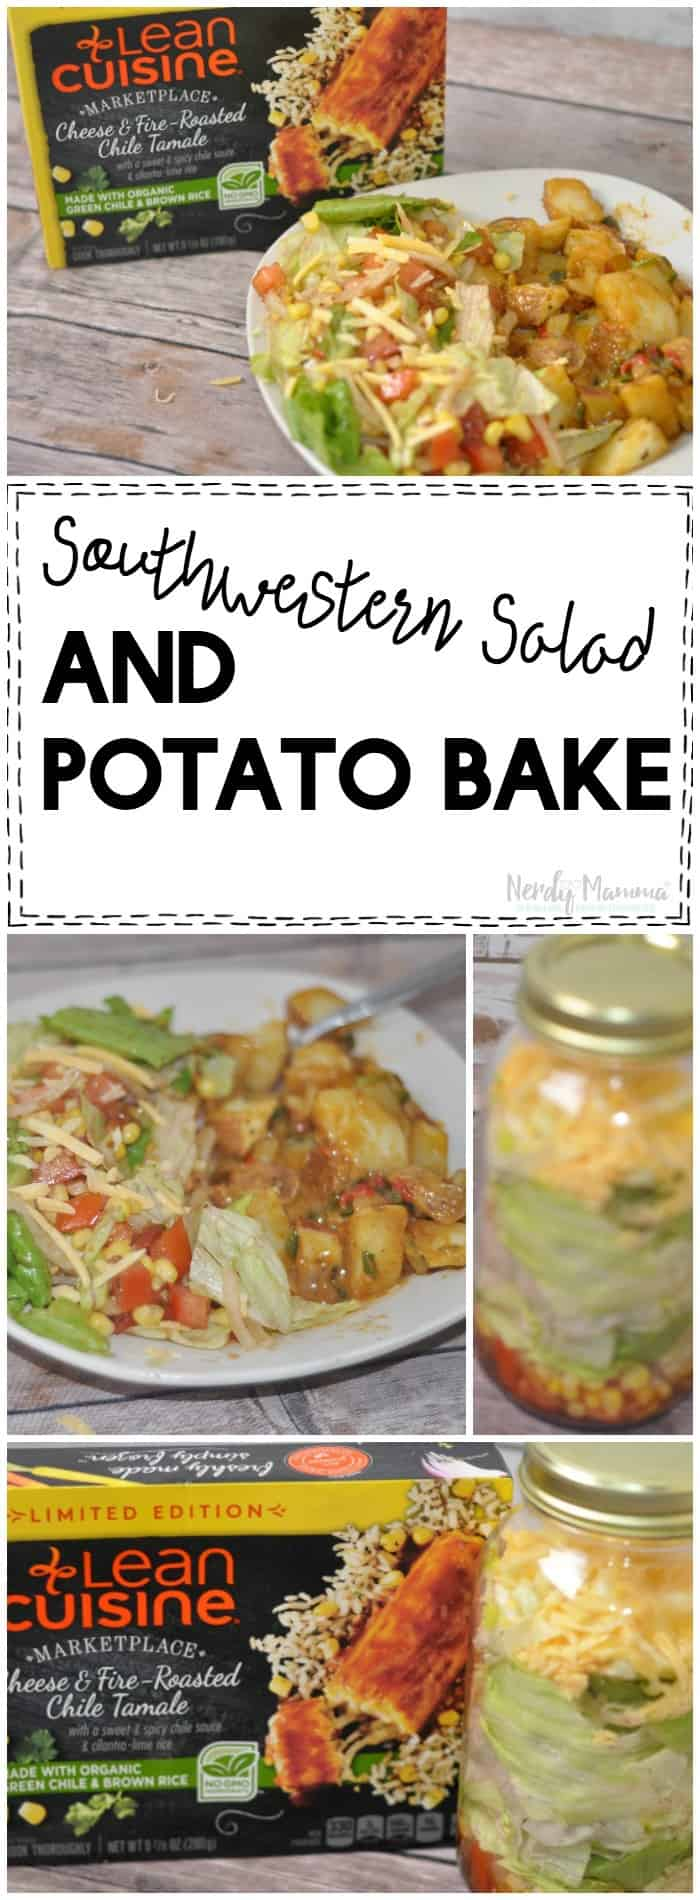 This Southwestern Salad and Potato to Bake is super easy to make and it's absolutely delicious! It's perfect for busy nights when you need a quick meal!